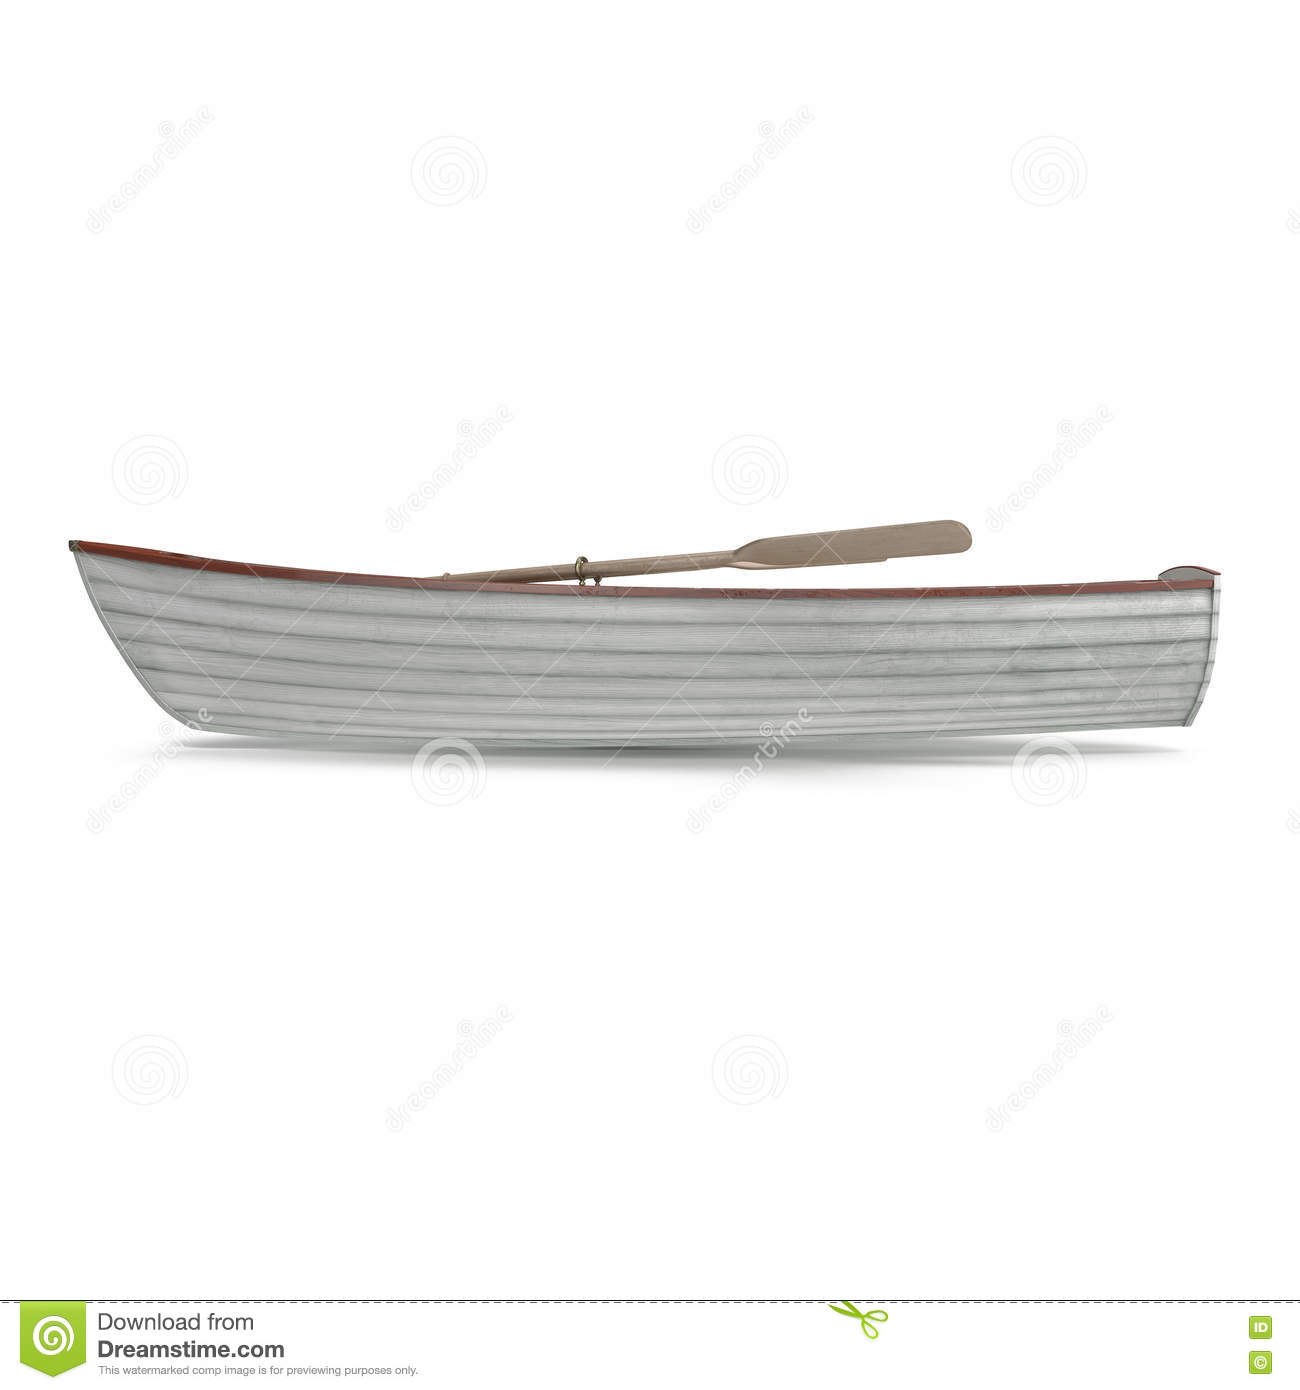 Wooden Row Boat On White. Top View. 3D Illustration Stock Illustration - Image: 79312735